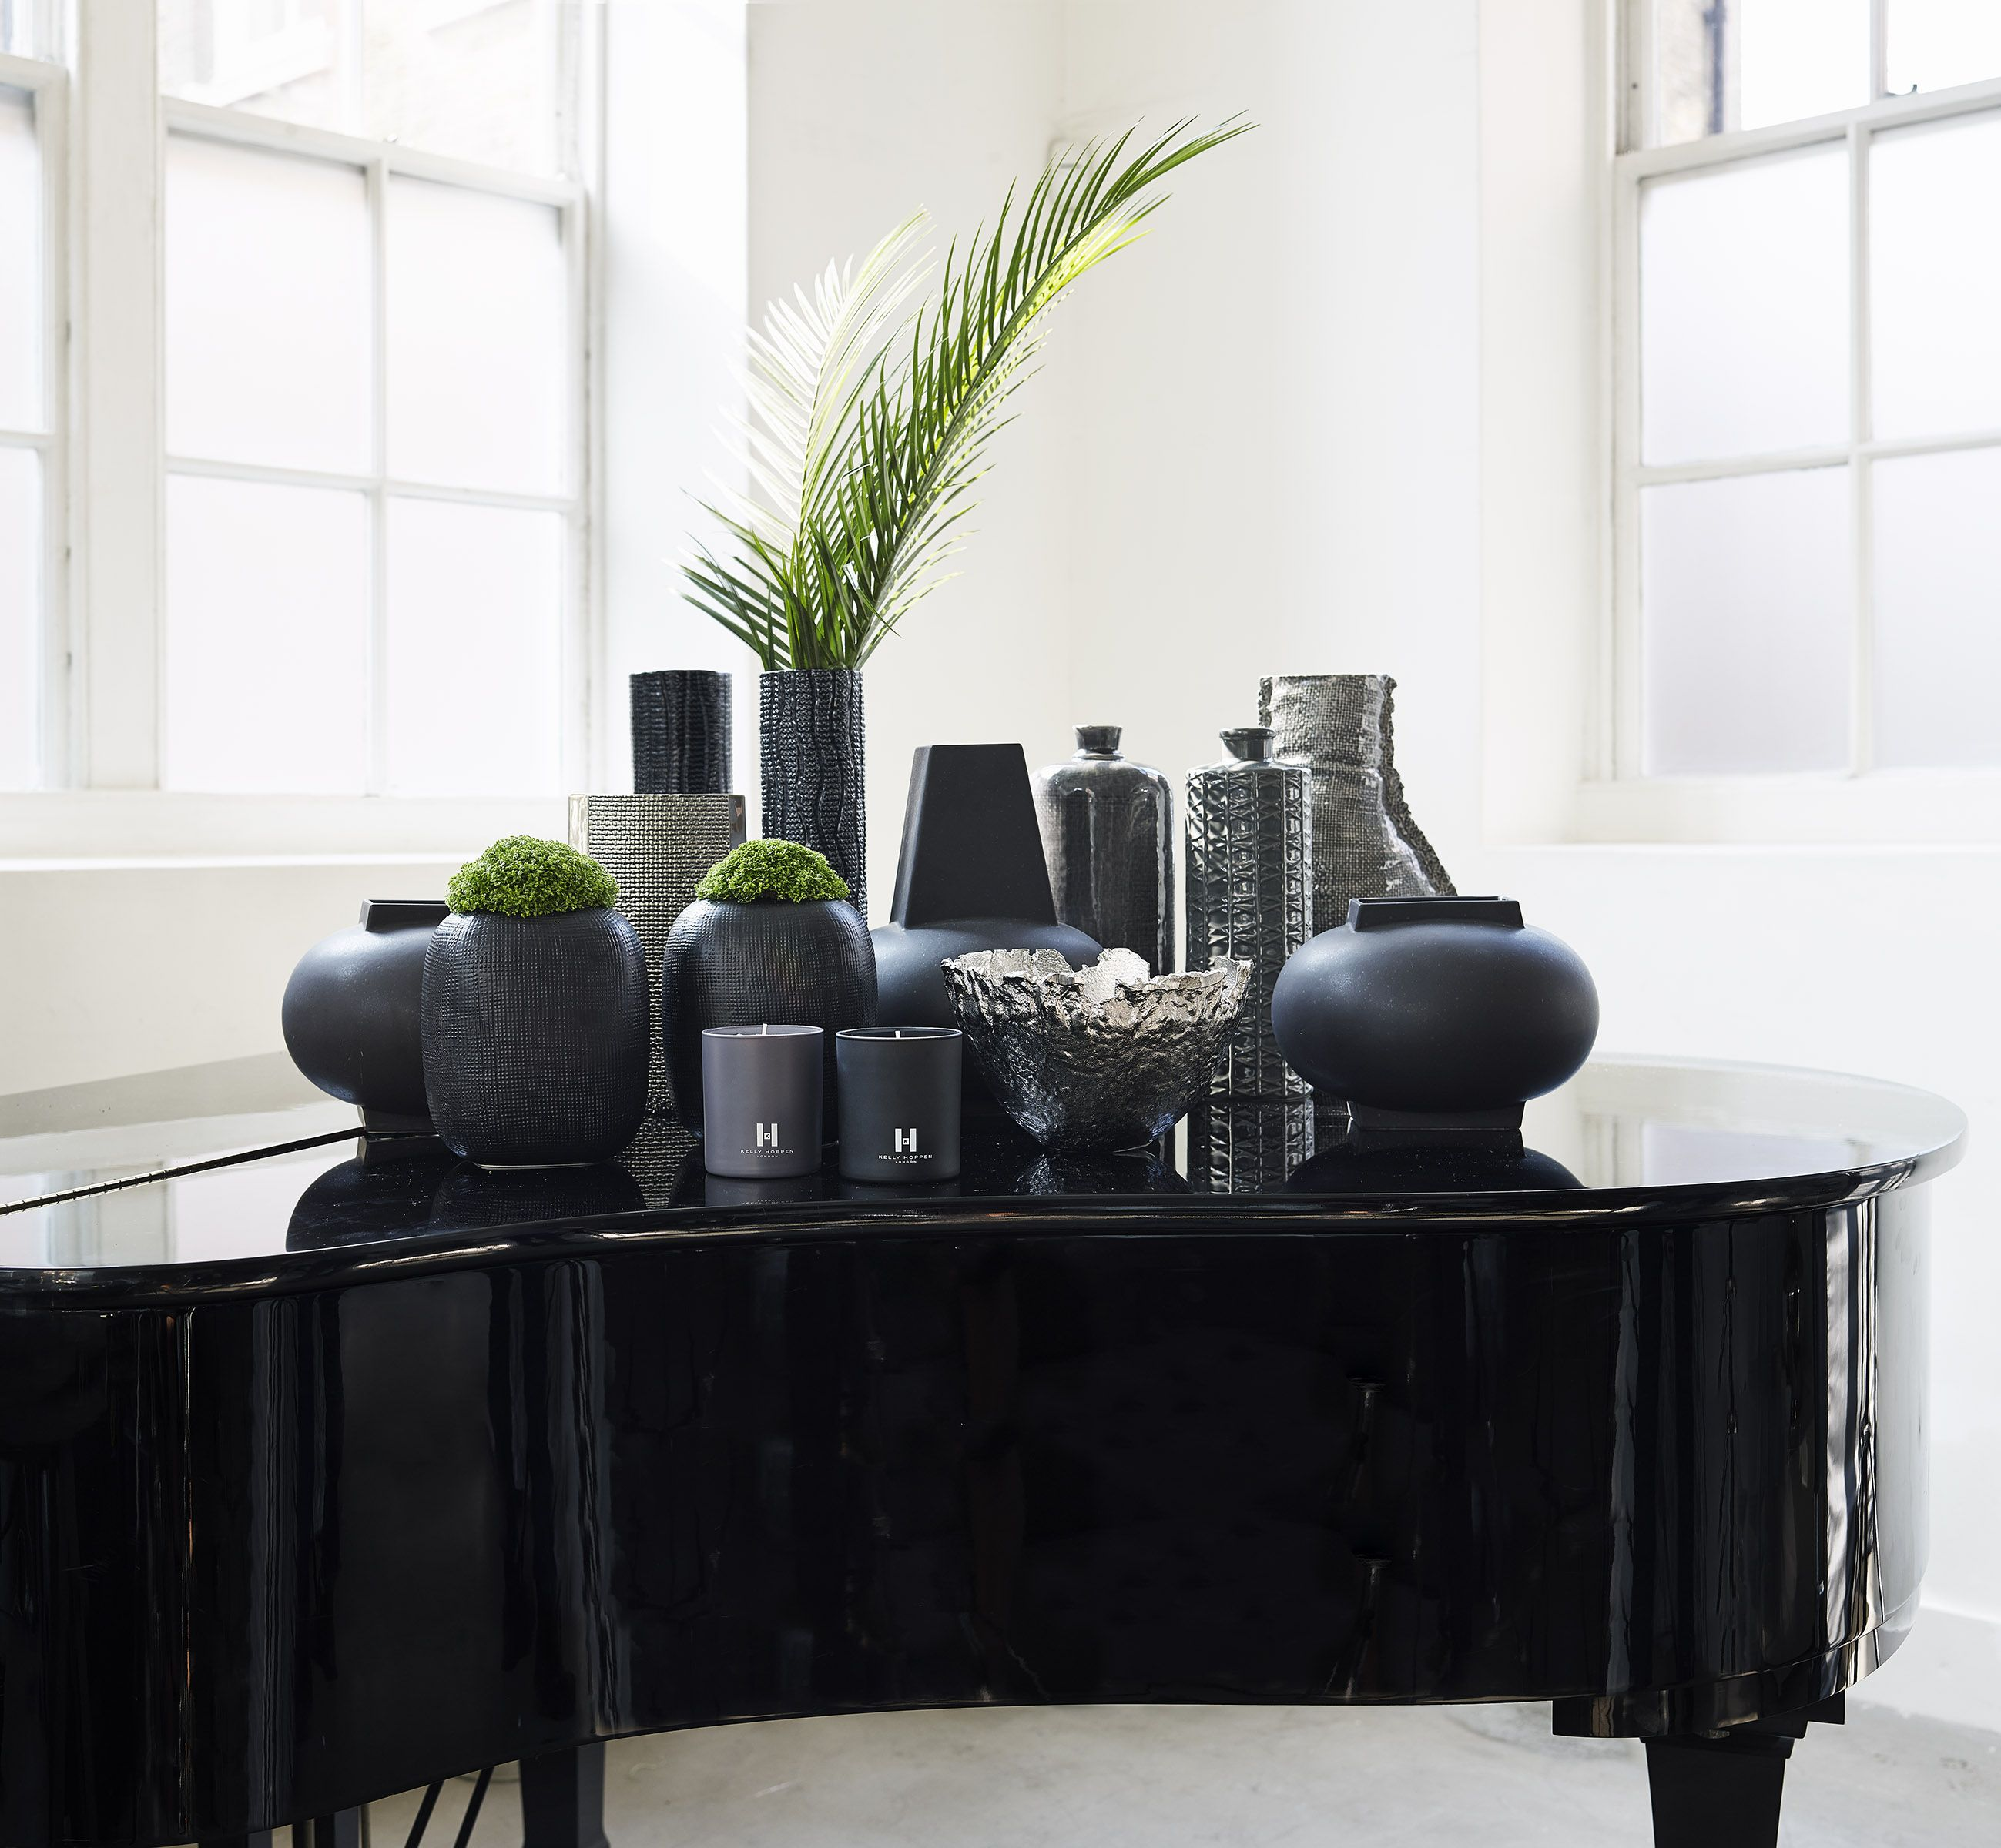 Kelly Hoppen London Collection Is Not Trend Based, But